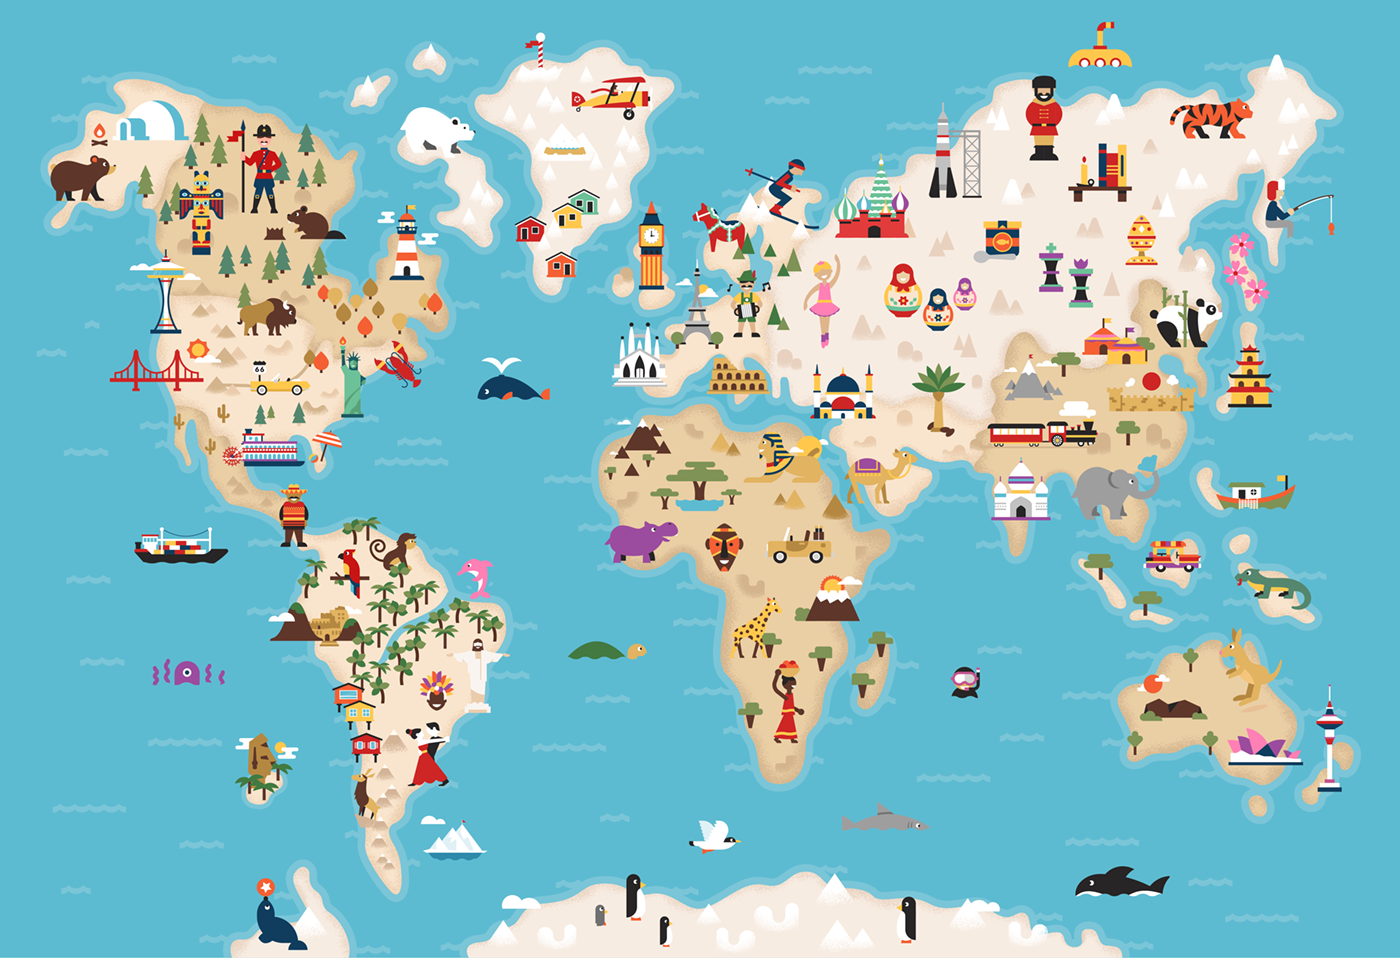 Disney Movie World Map.All About This World Map Shows Where Every Disney Movie Is Set Www